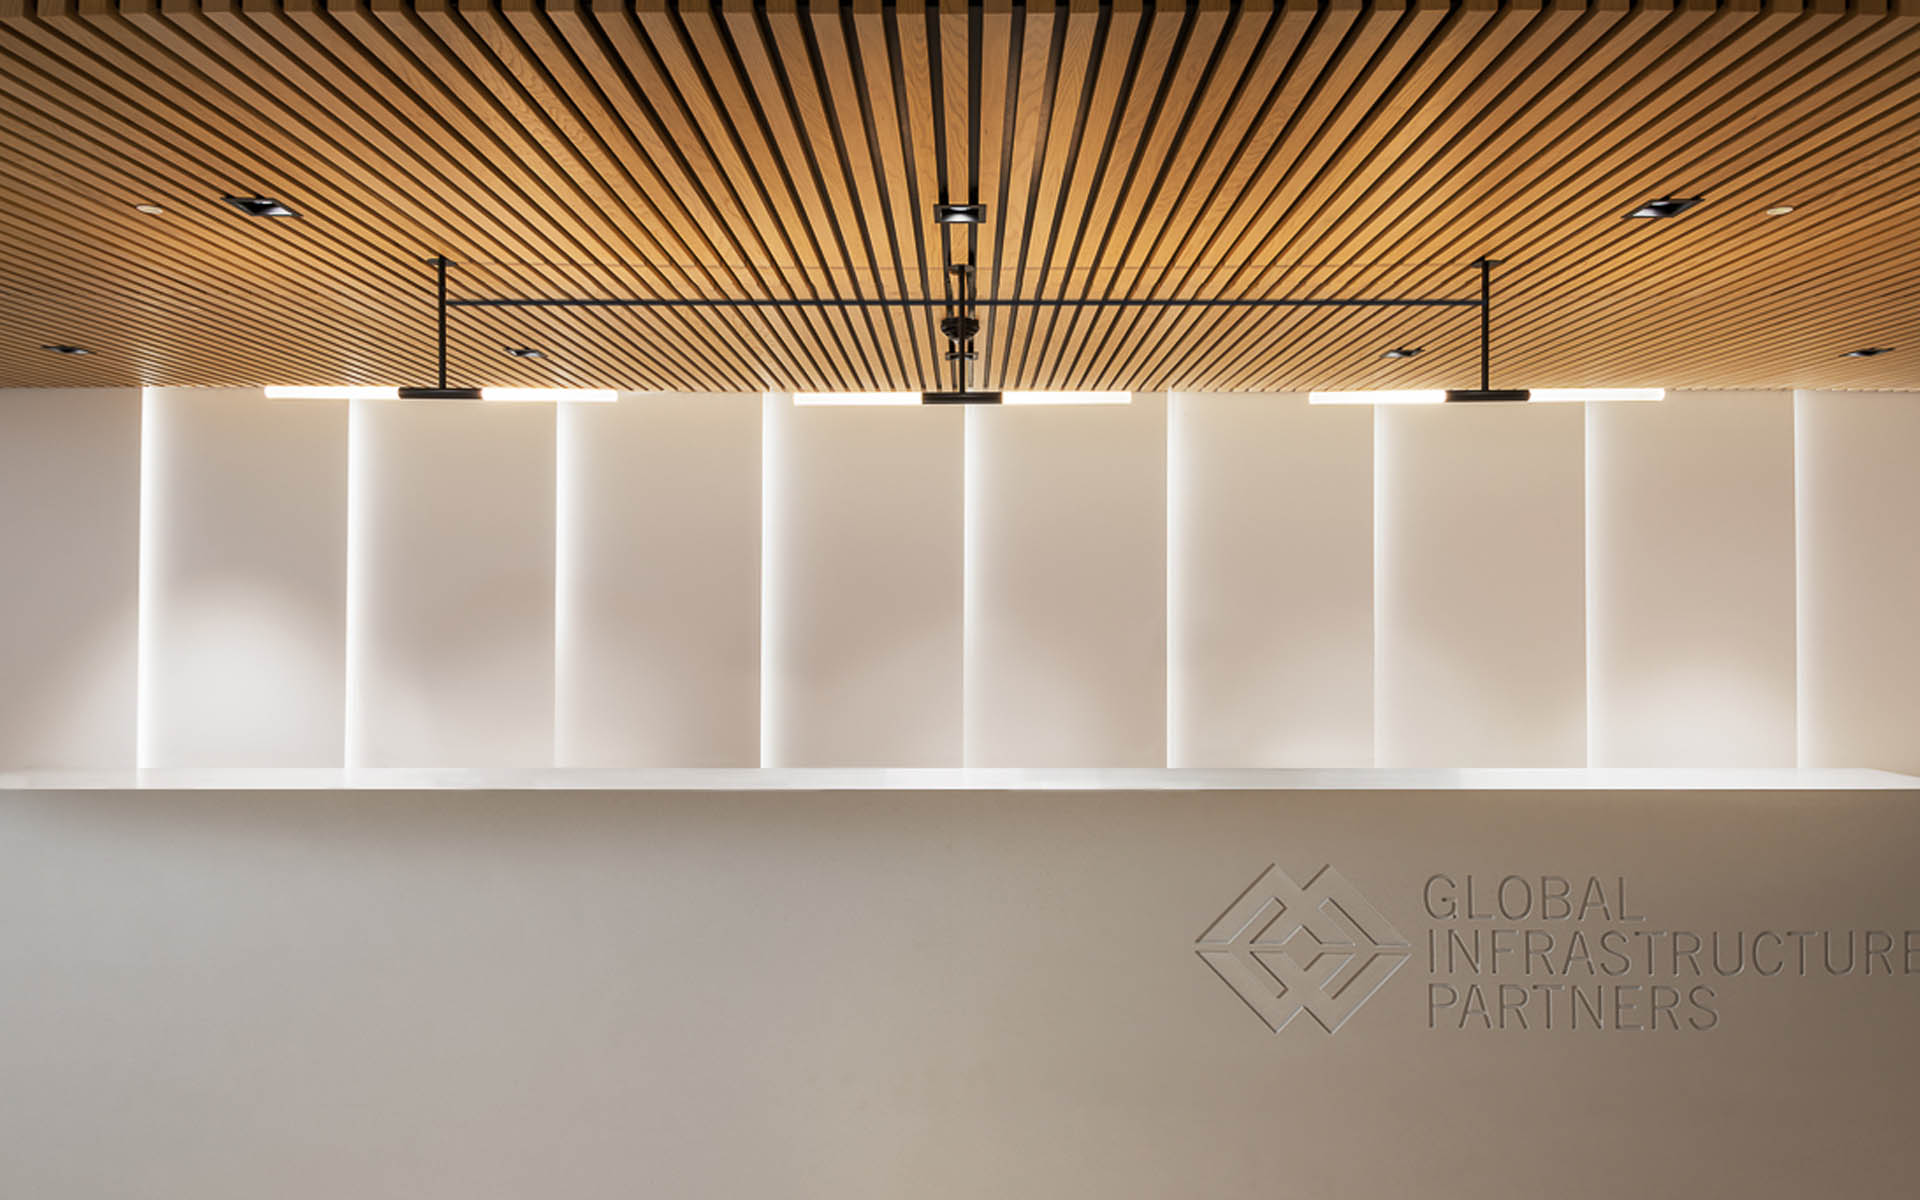 Custom Handcrafted Pendant Light Linear Batons Minimalist Sleek Design Office Reception Desk London Nulty Bespoke